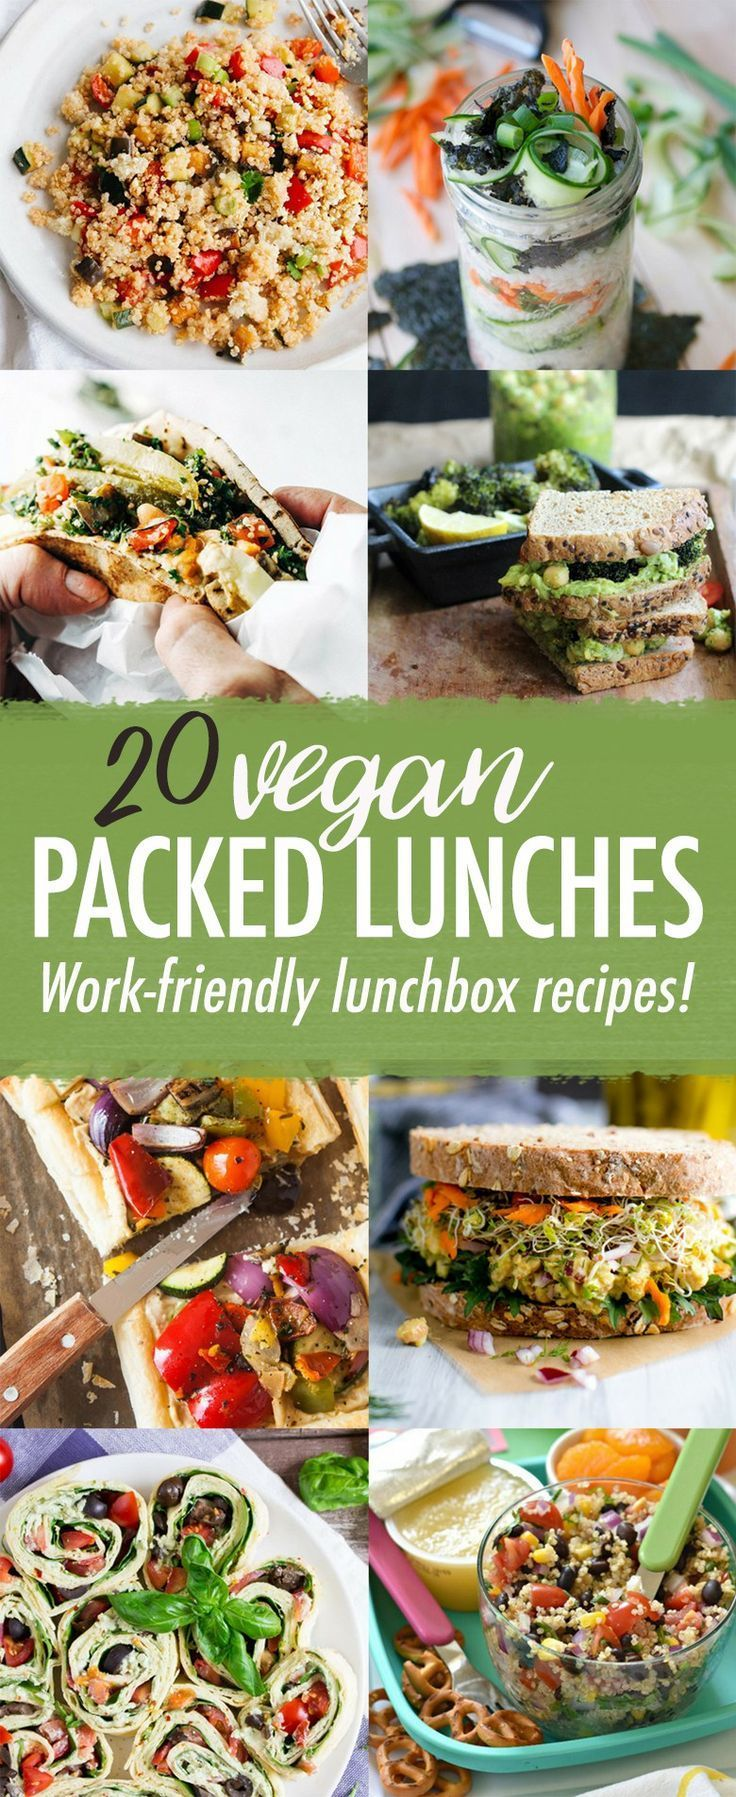 #healthy #recipes #fitness #packed #health #vegan #lunch #busy #moms #tips #food #and20 Vegan Packed...